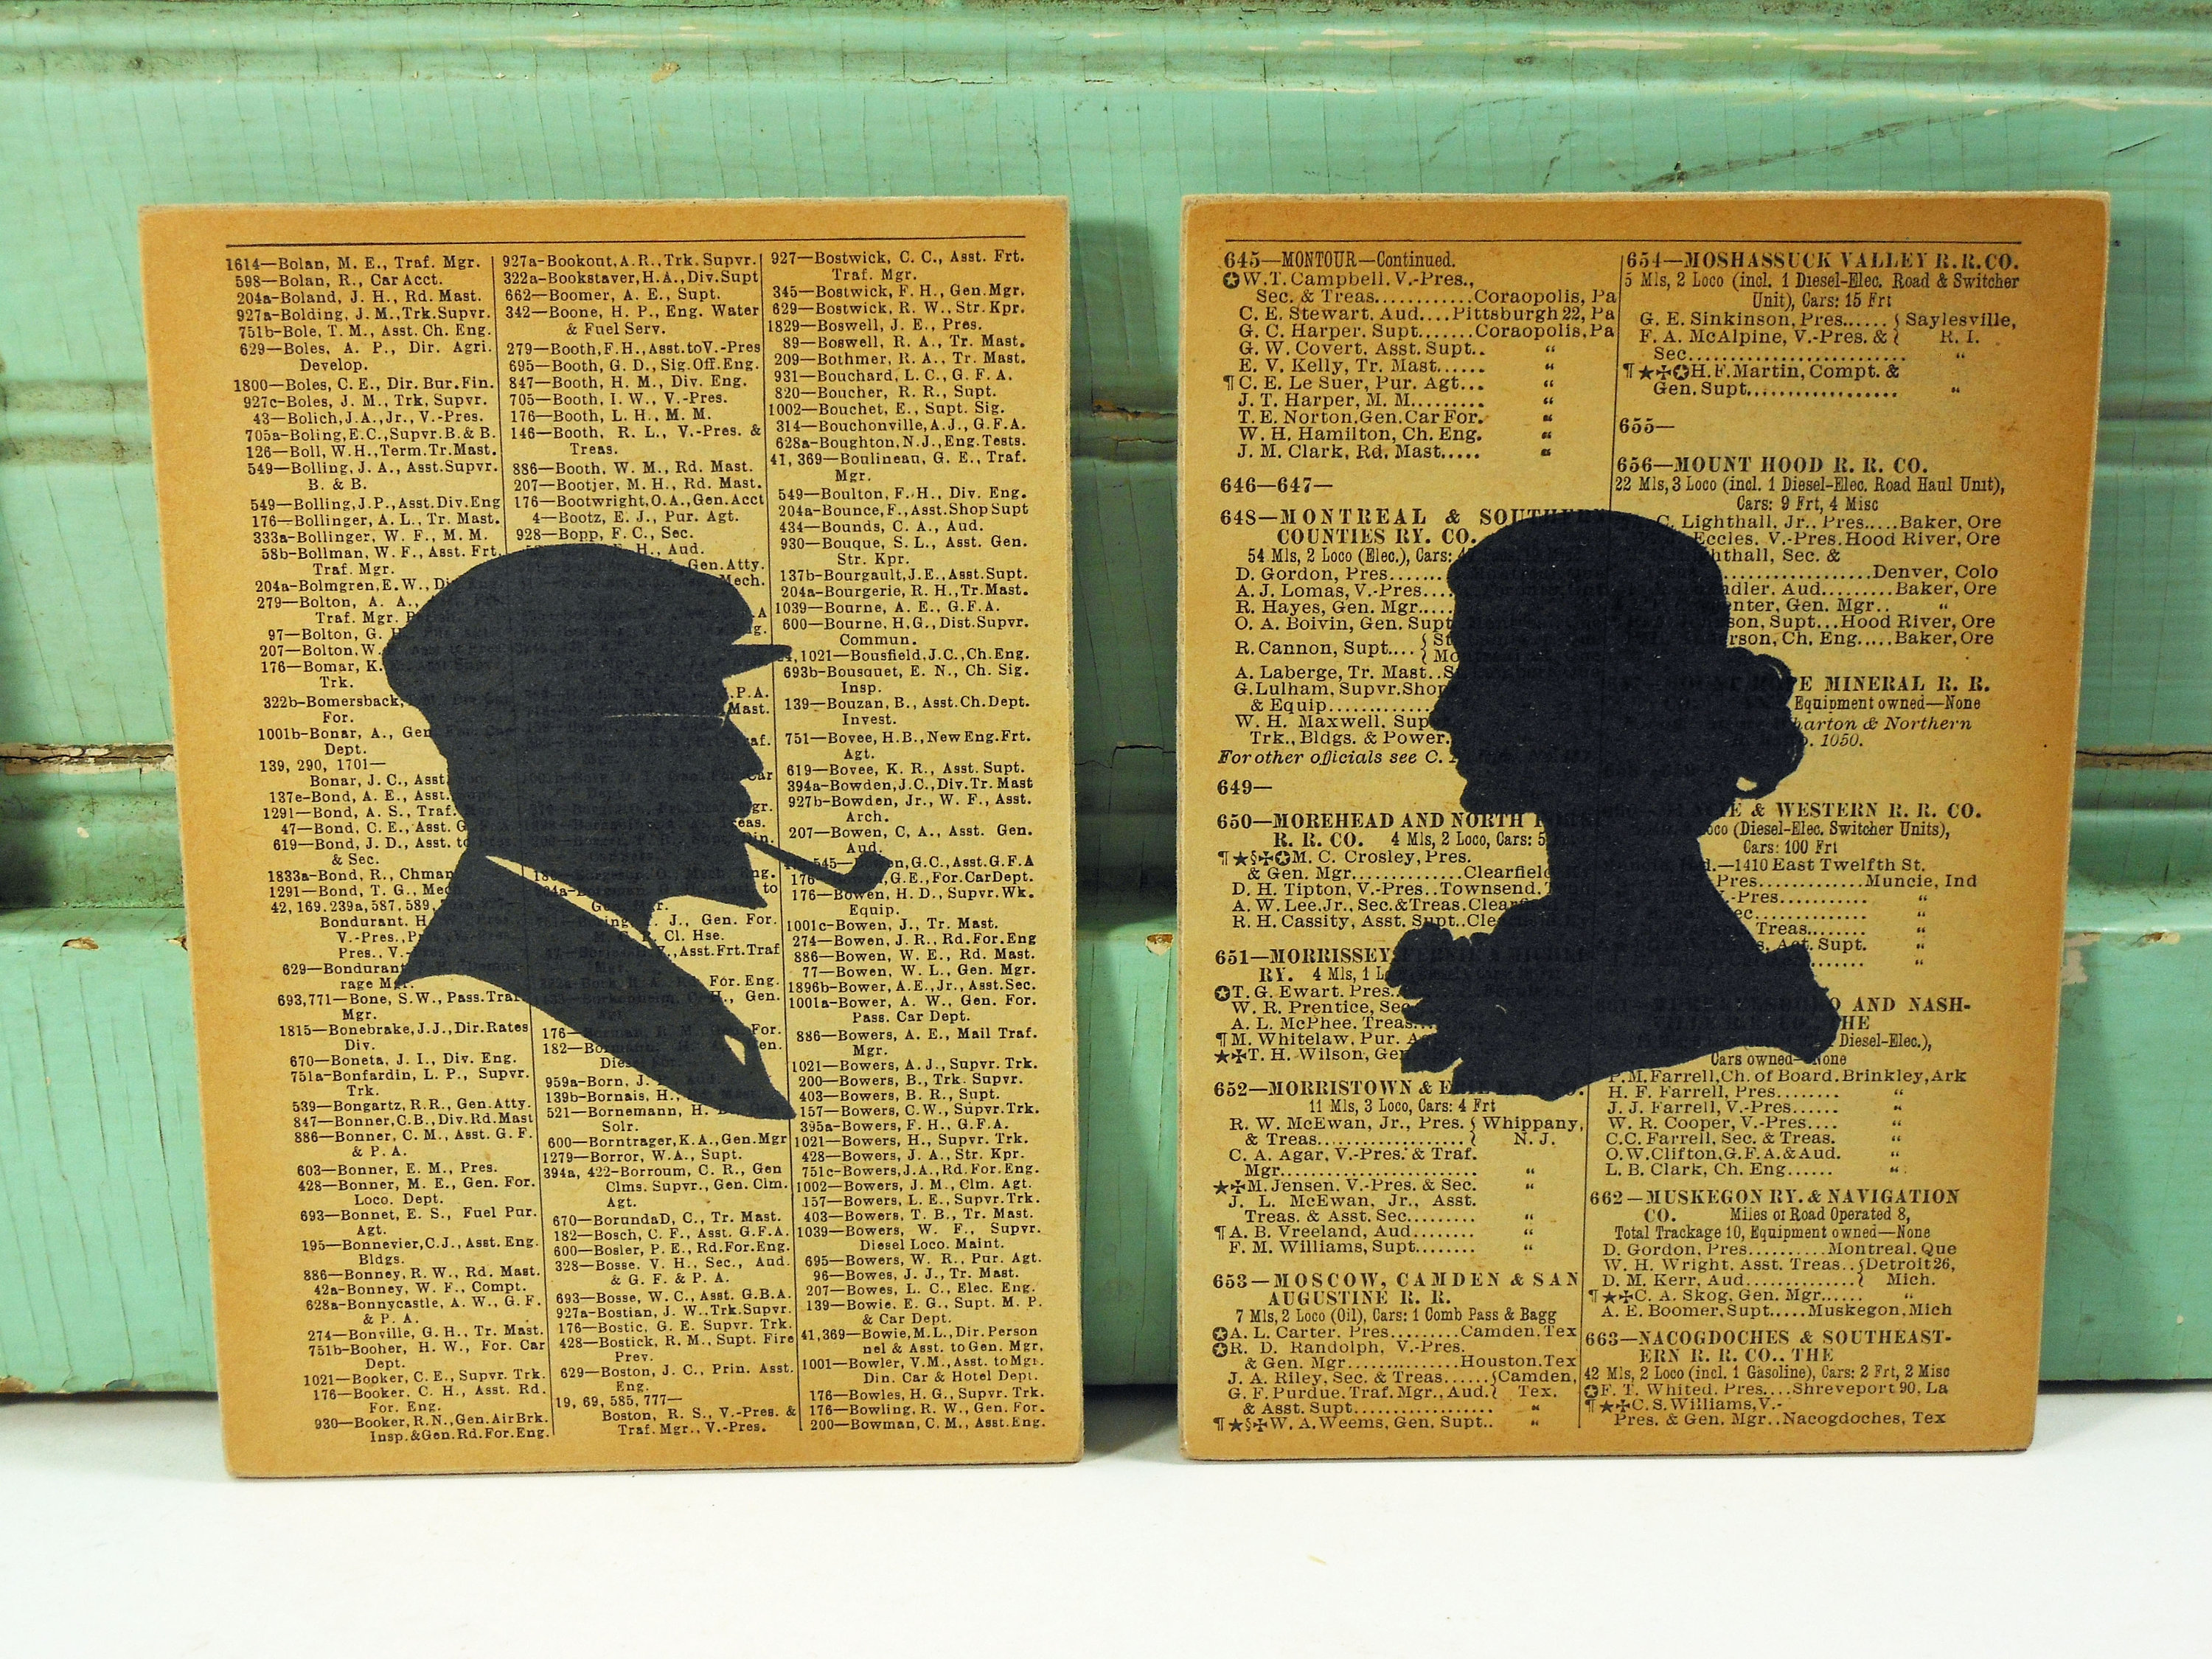 Pair of Silhouettes, Old Fashioned Man & Woman Prints on Pages from Vintage Railroad Book